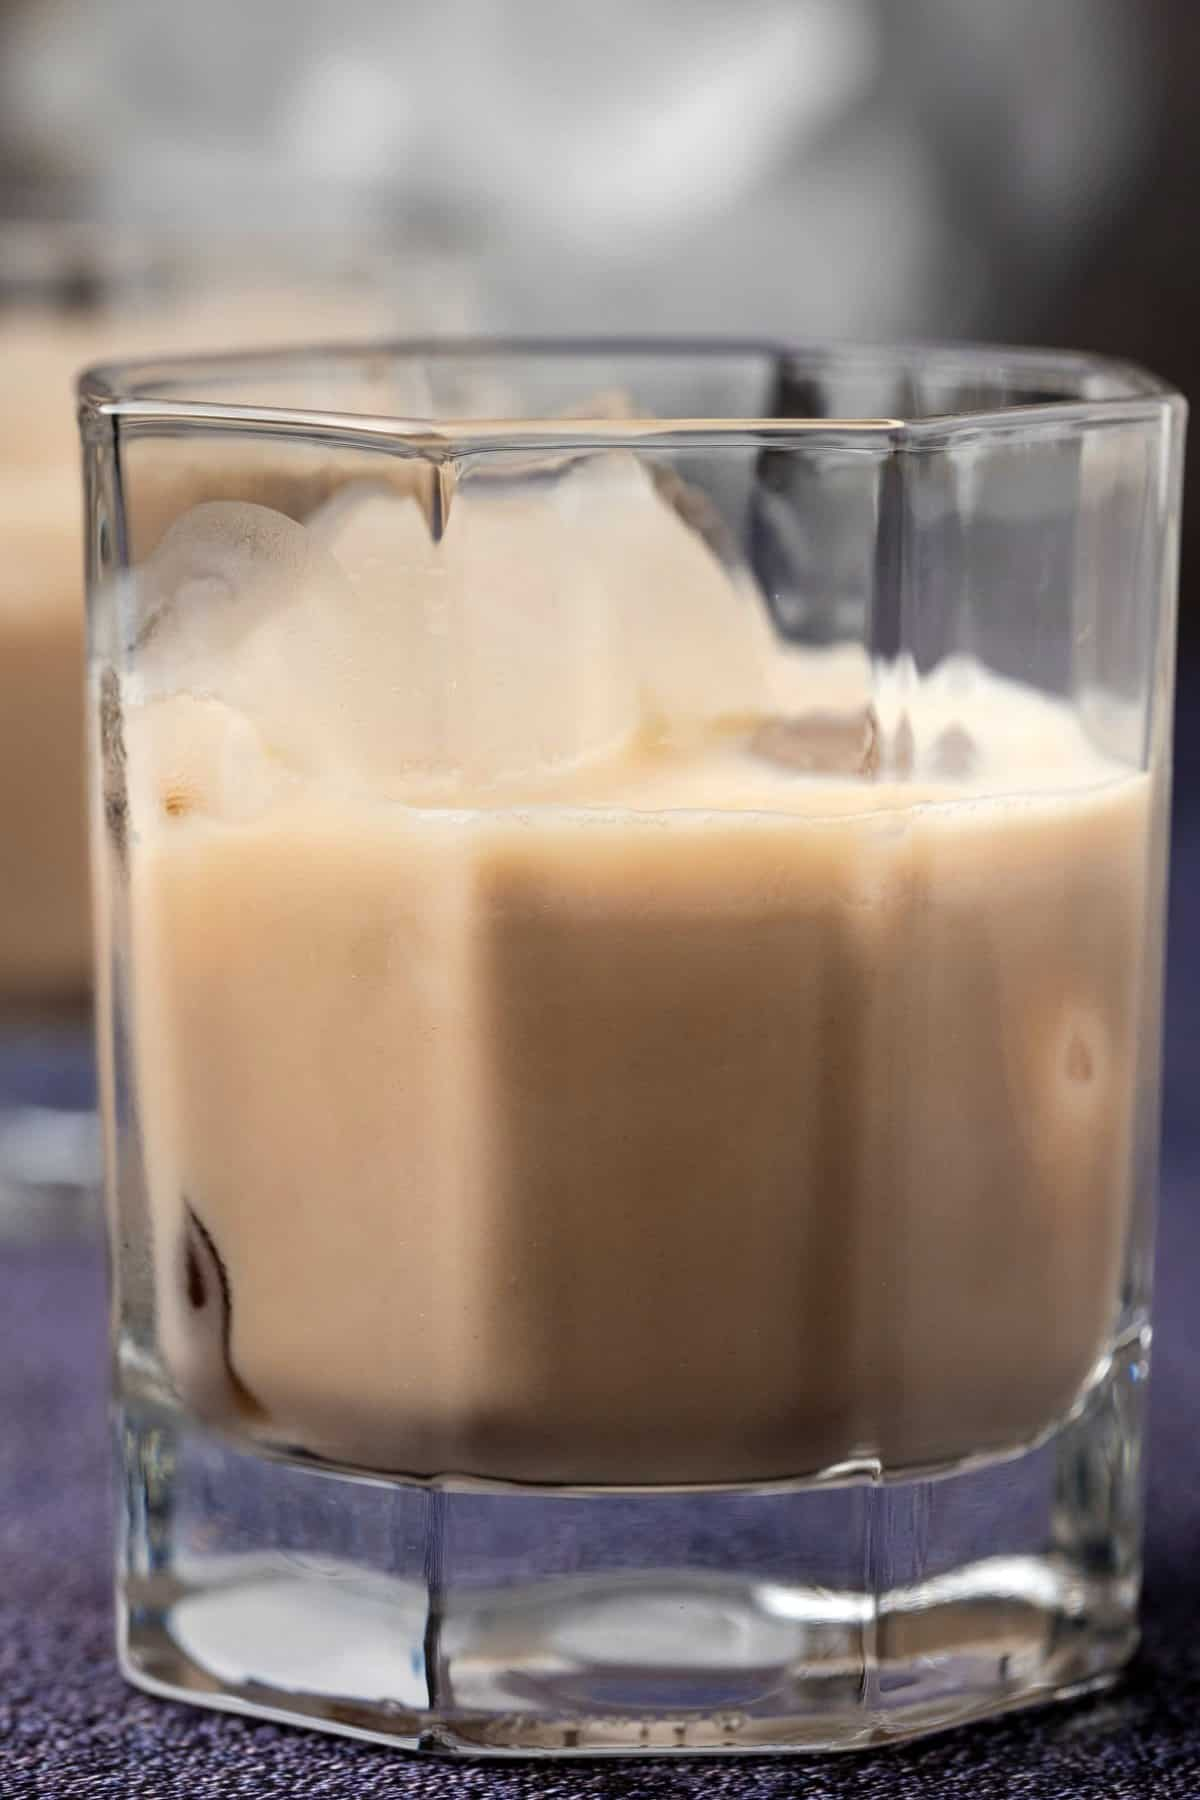 Irish cream with ice in a glass.